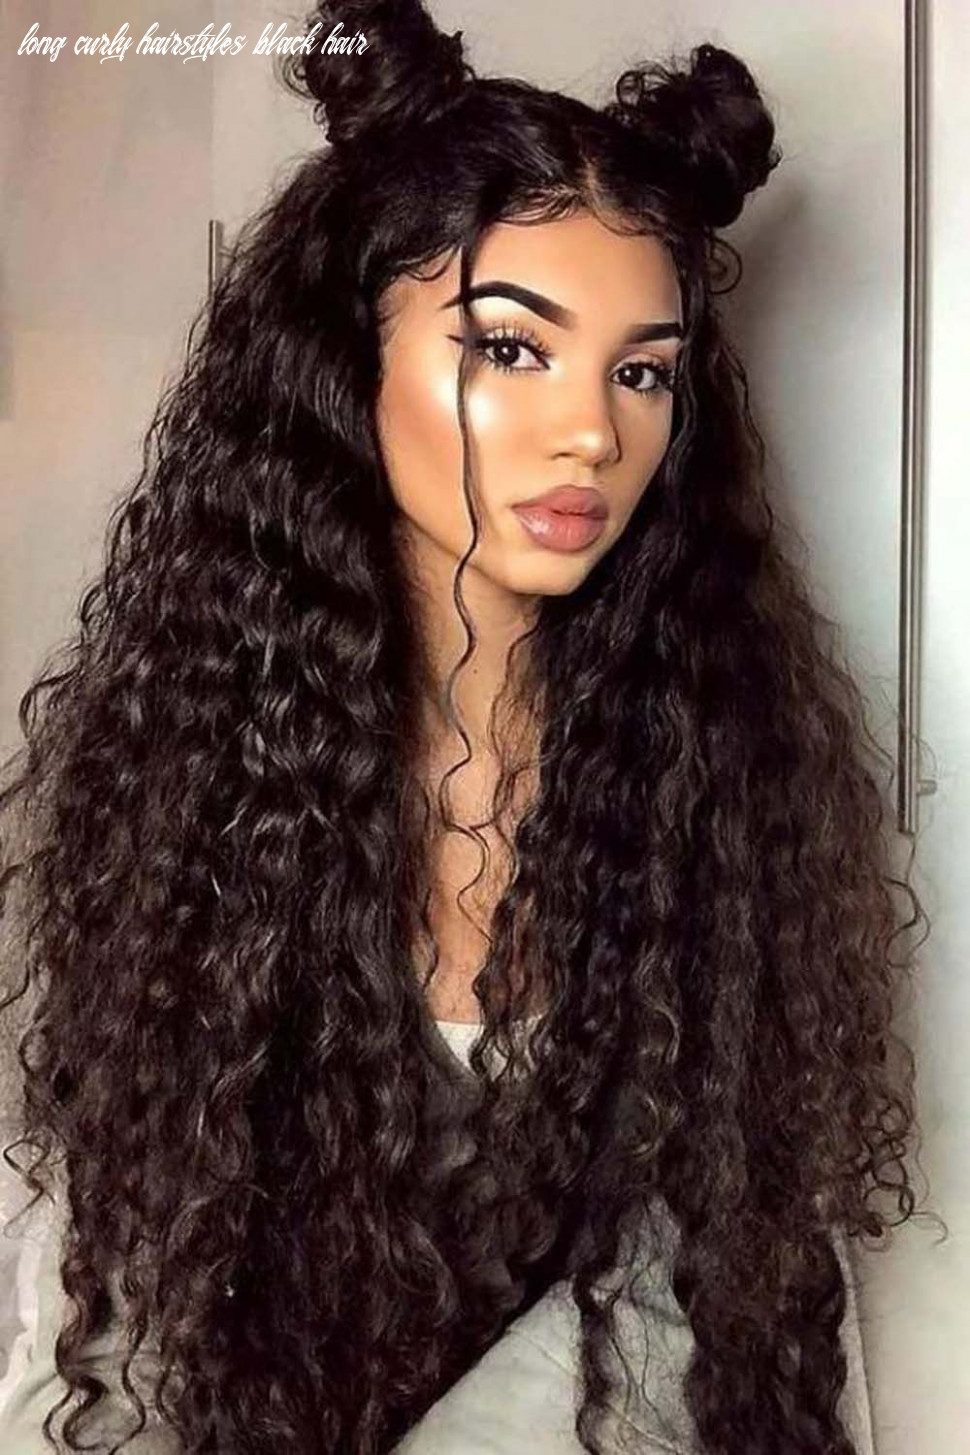 Pin auf curly hairstyles long curly hairstyles black hair